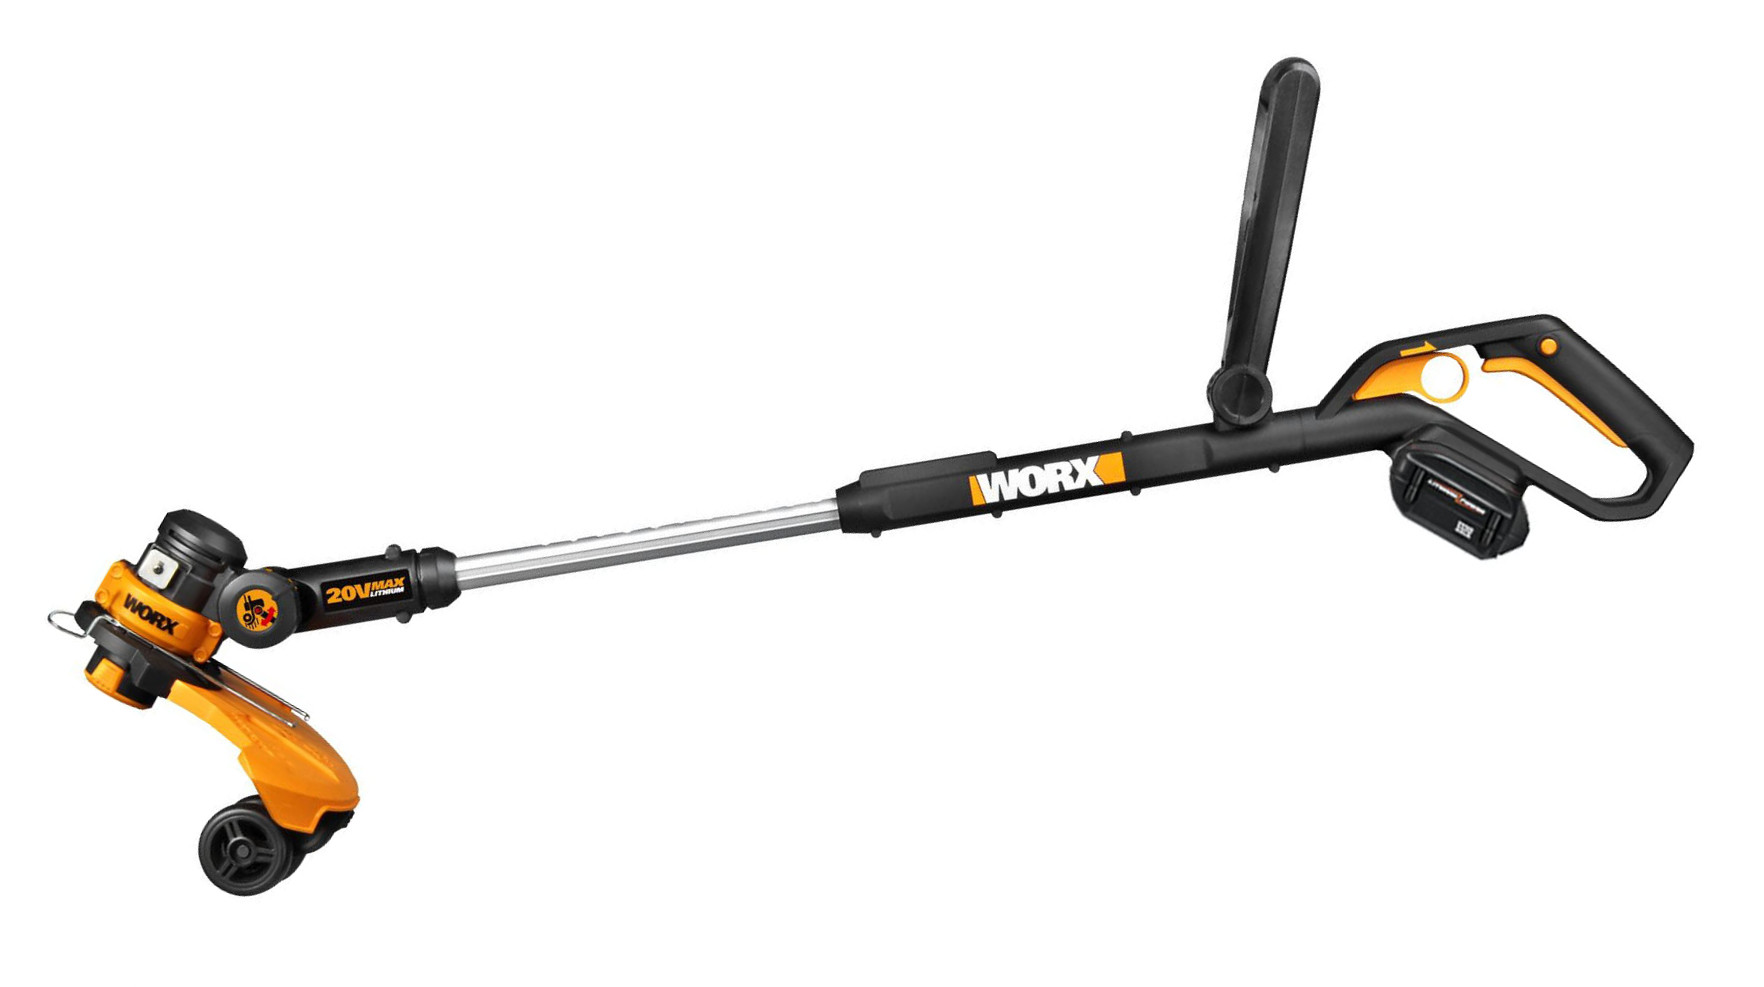 Worx WG175 String Trimmer Review